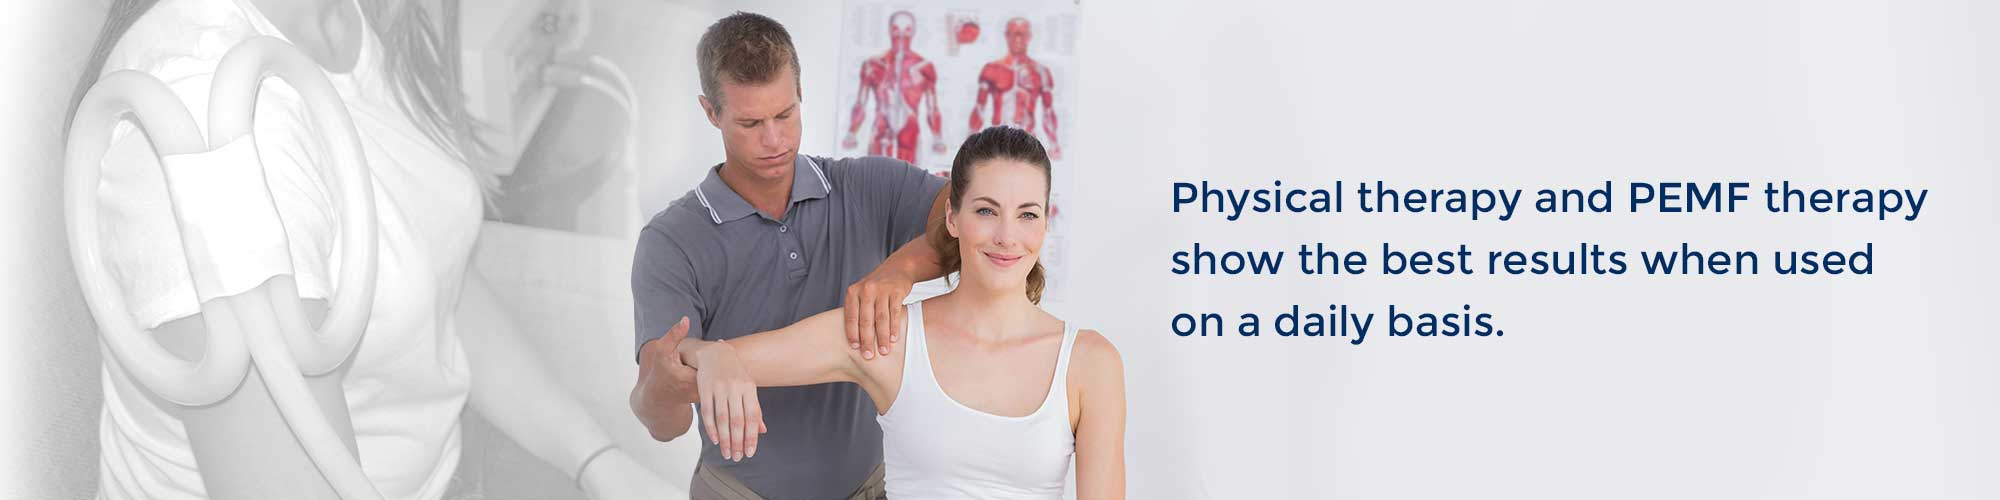 Physical therapy and PEMF therapy show results when used on a daily basis for the best outcome